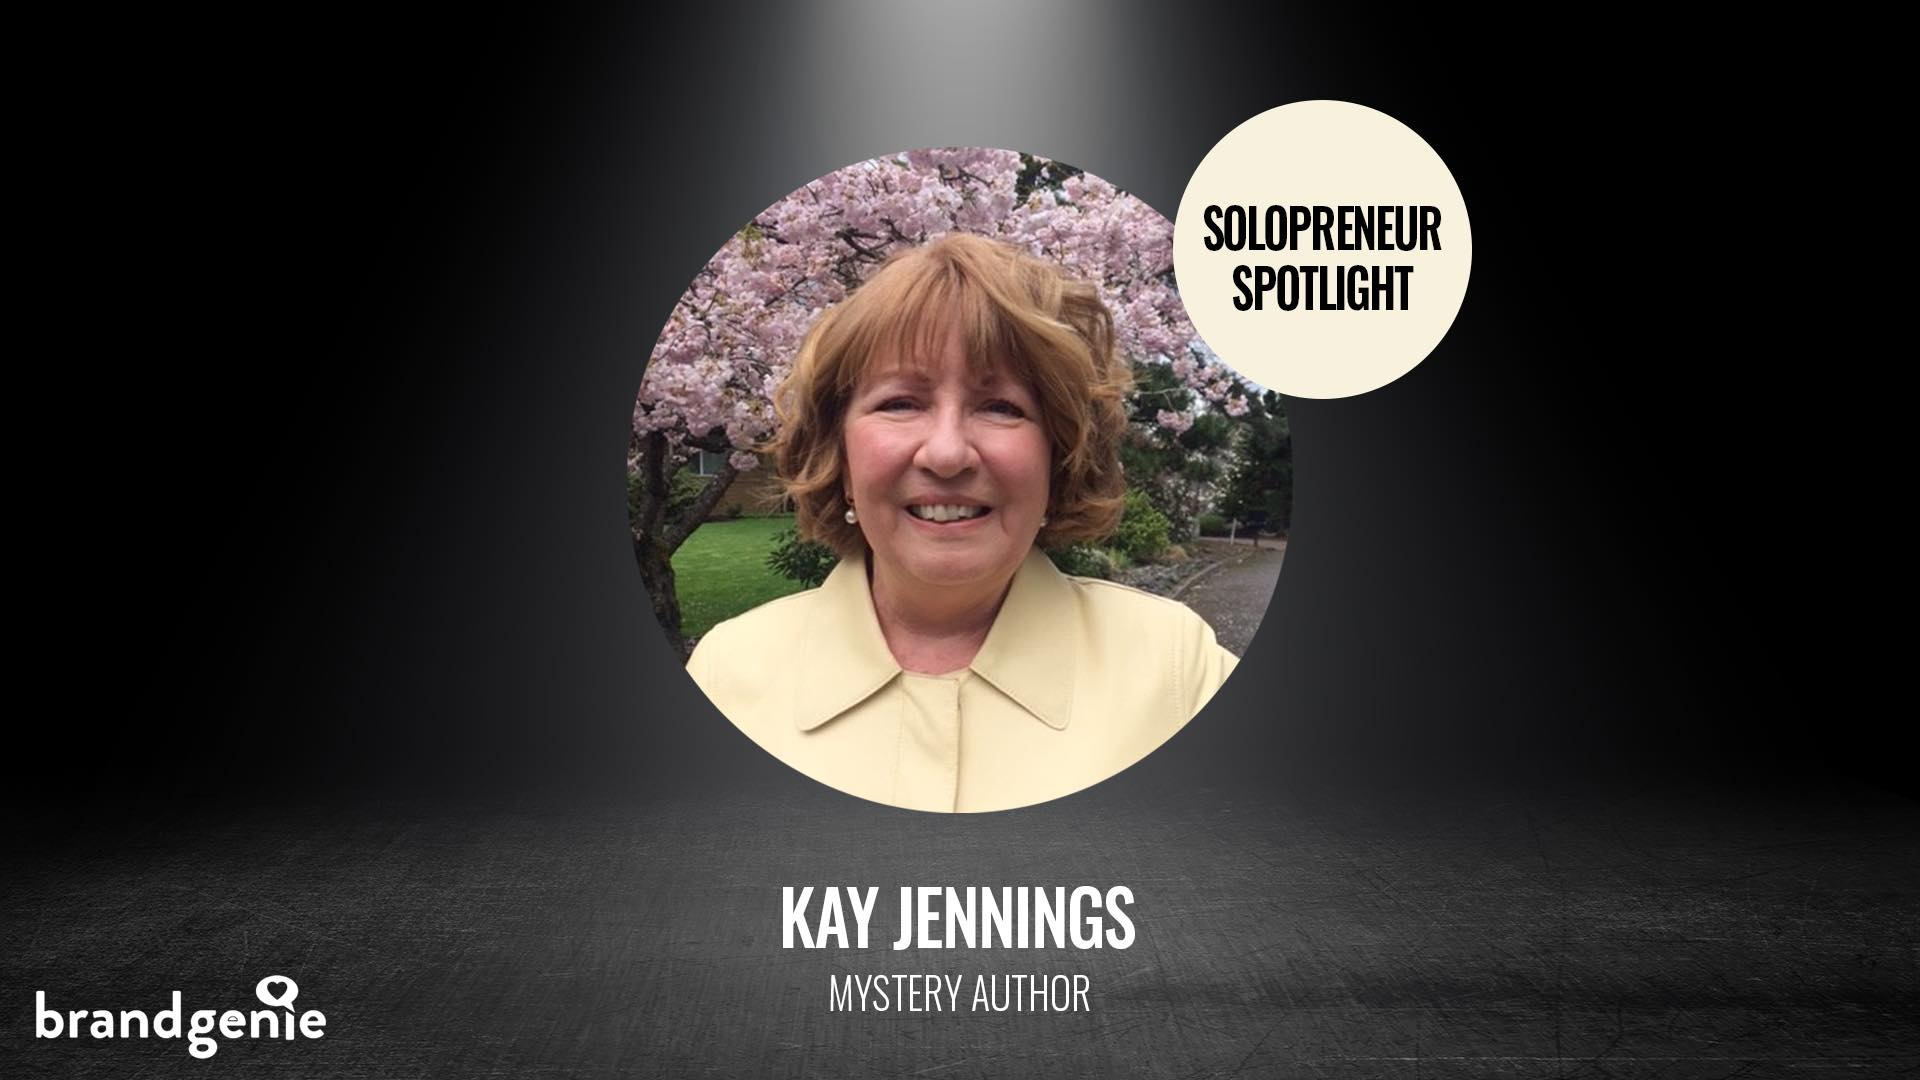 Author Kay Jennings shares her journey to publishing her first novel, tips for writers, and why having a compelling website is so important for an author.